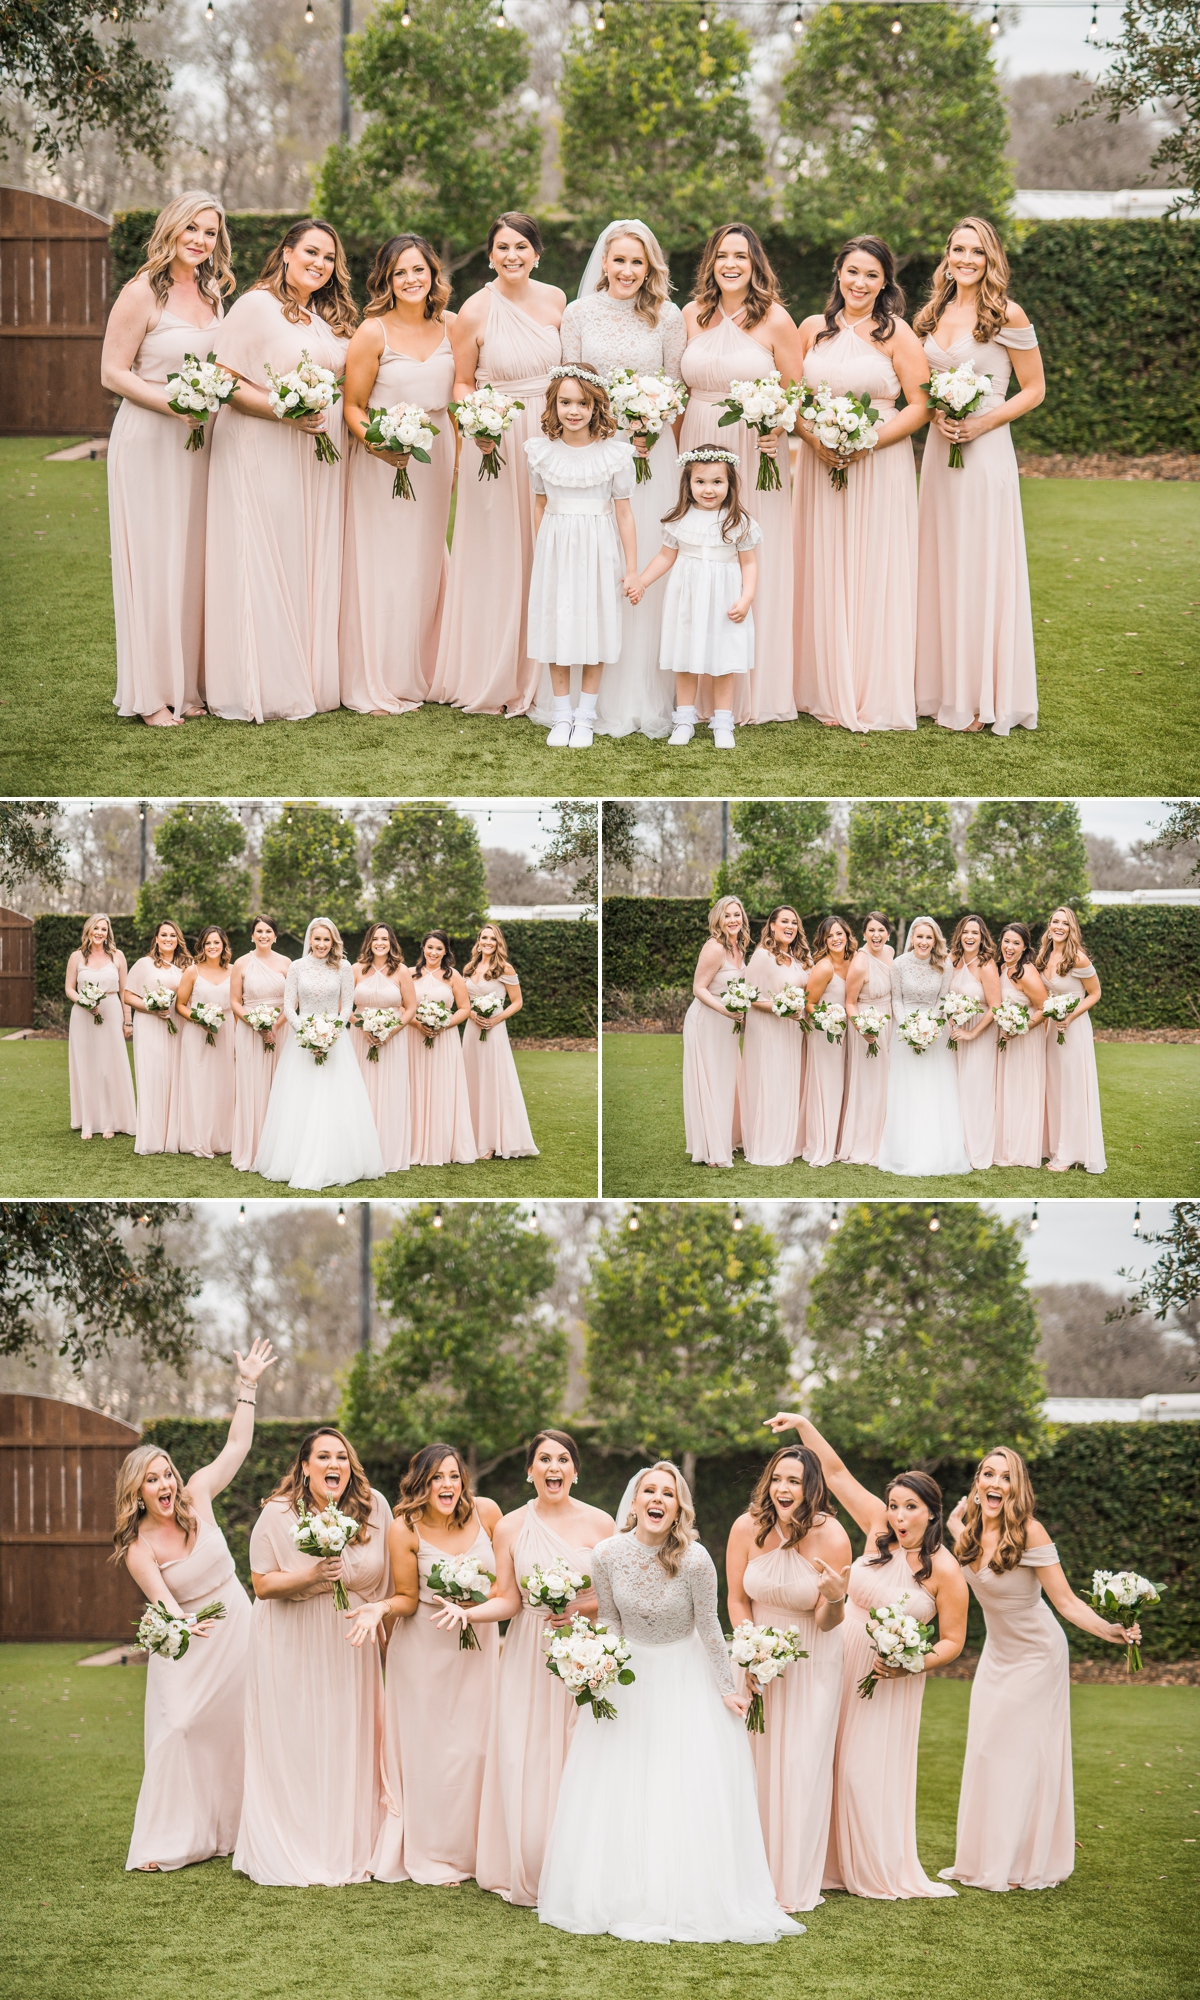 Bride with Bridesmaids in Blush pink dresses at Briscoe Manor Wedding